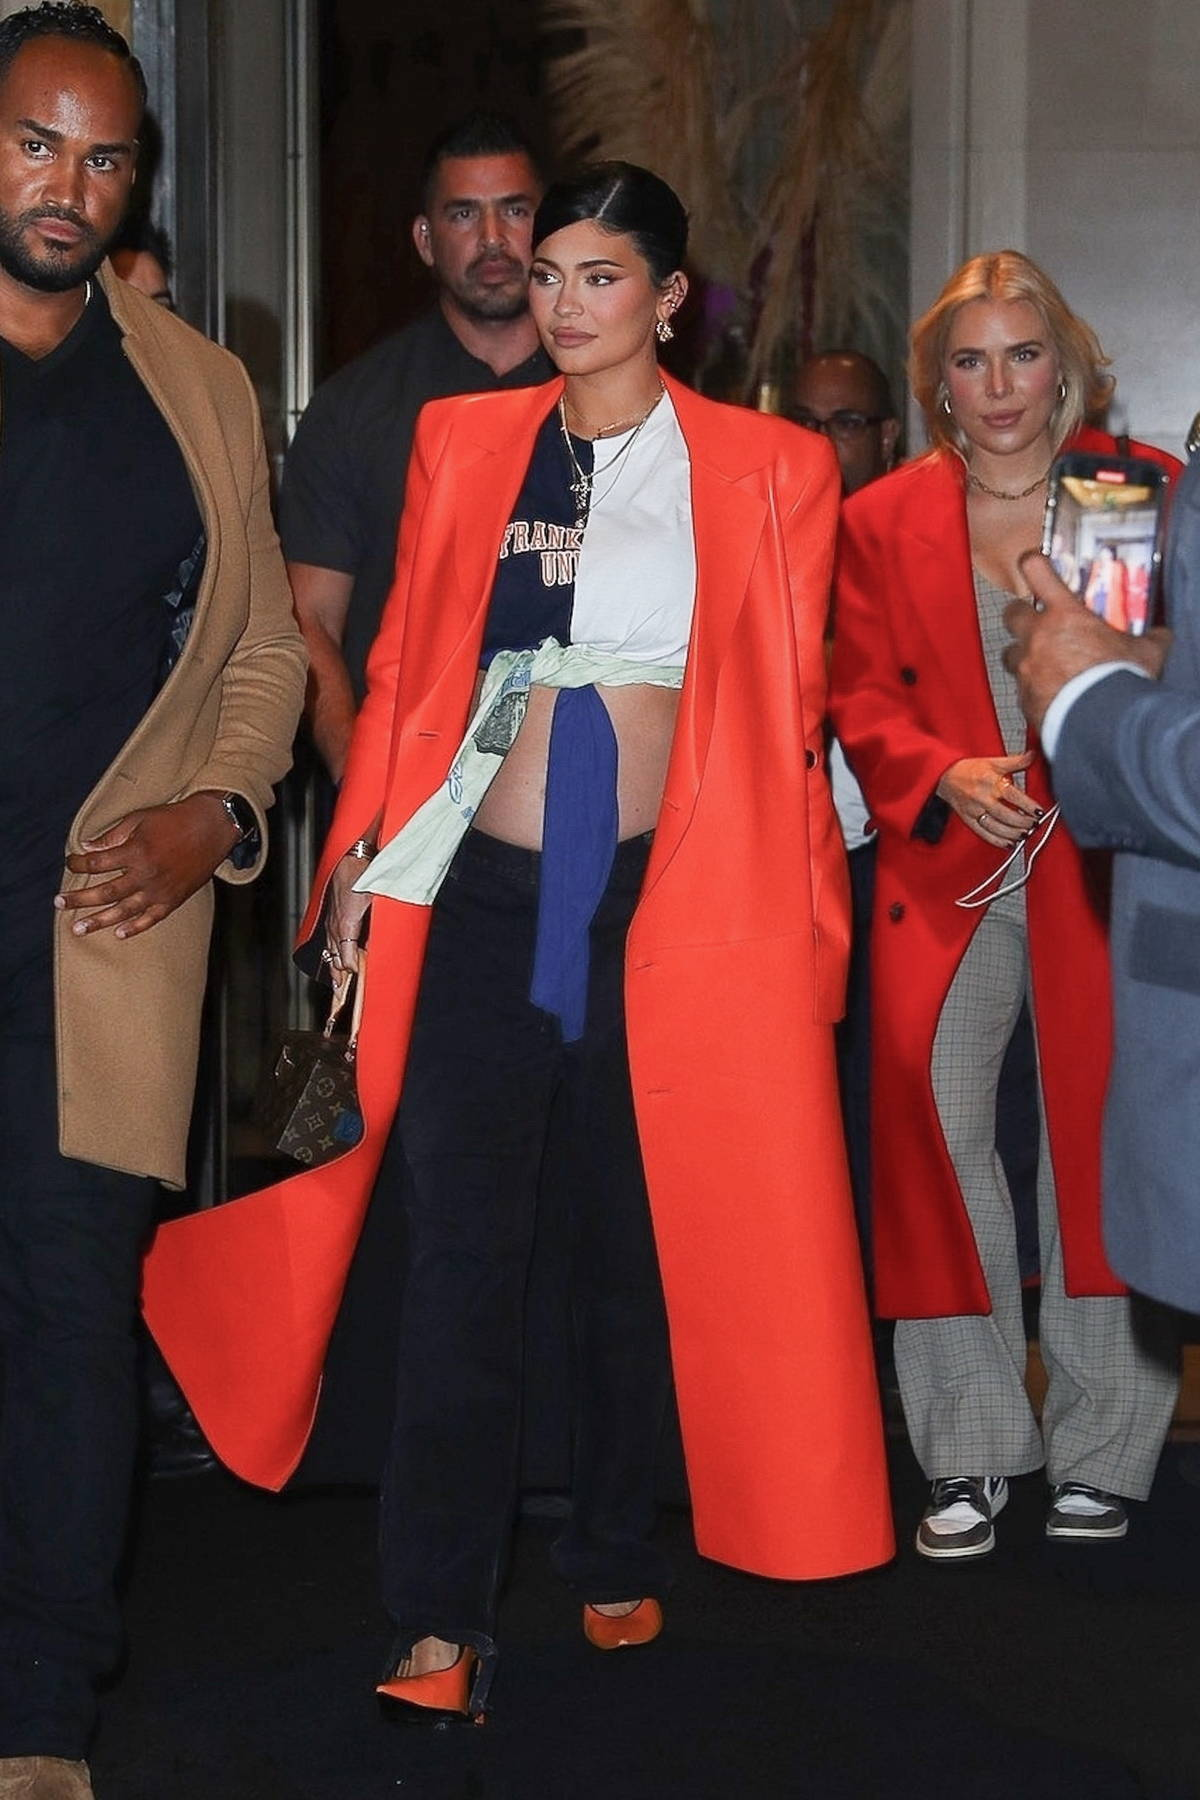 Kylie Jenner rocks a neon orange coat and shows off her belly on the way to dinner in New York City